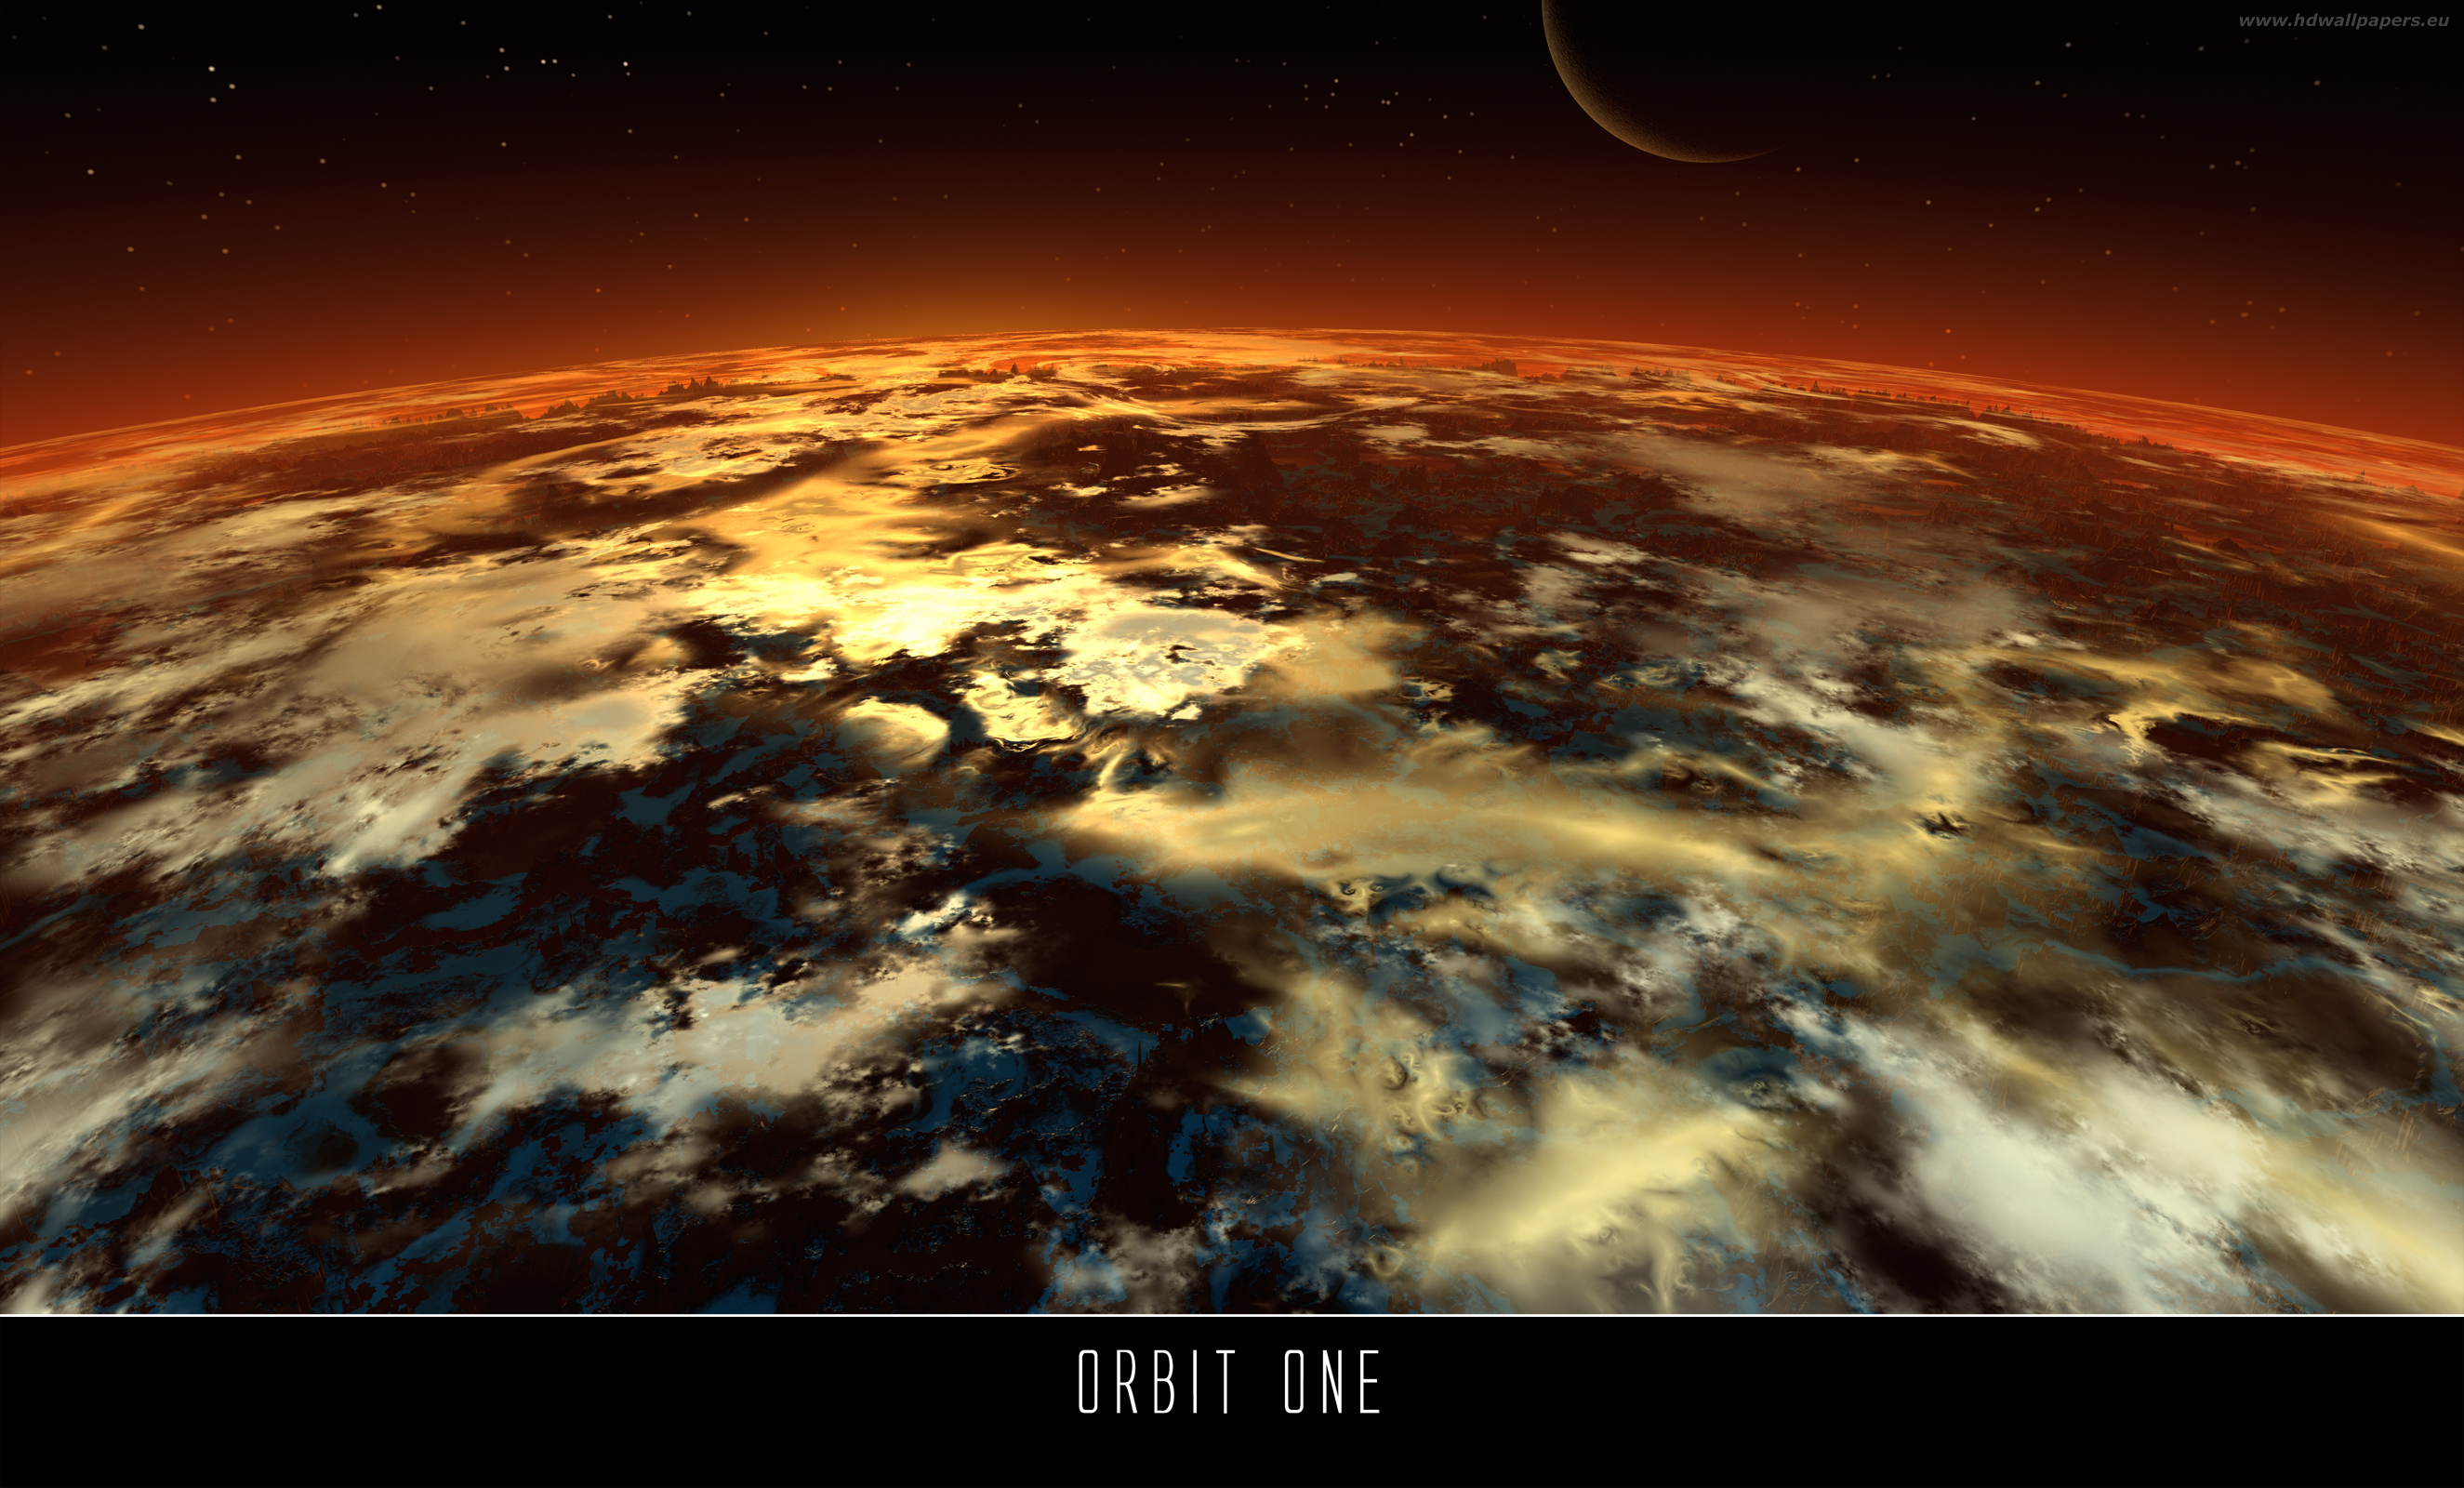 hd-wallpaper-orbit-one-2650x1600